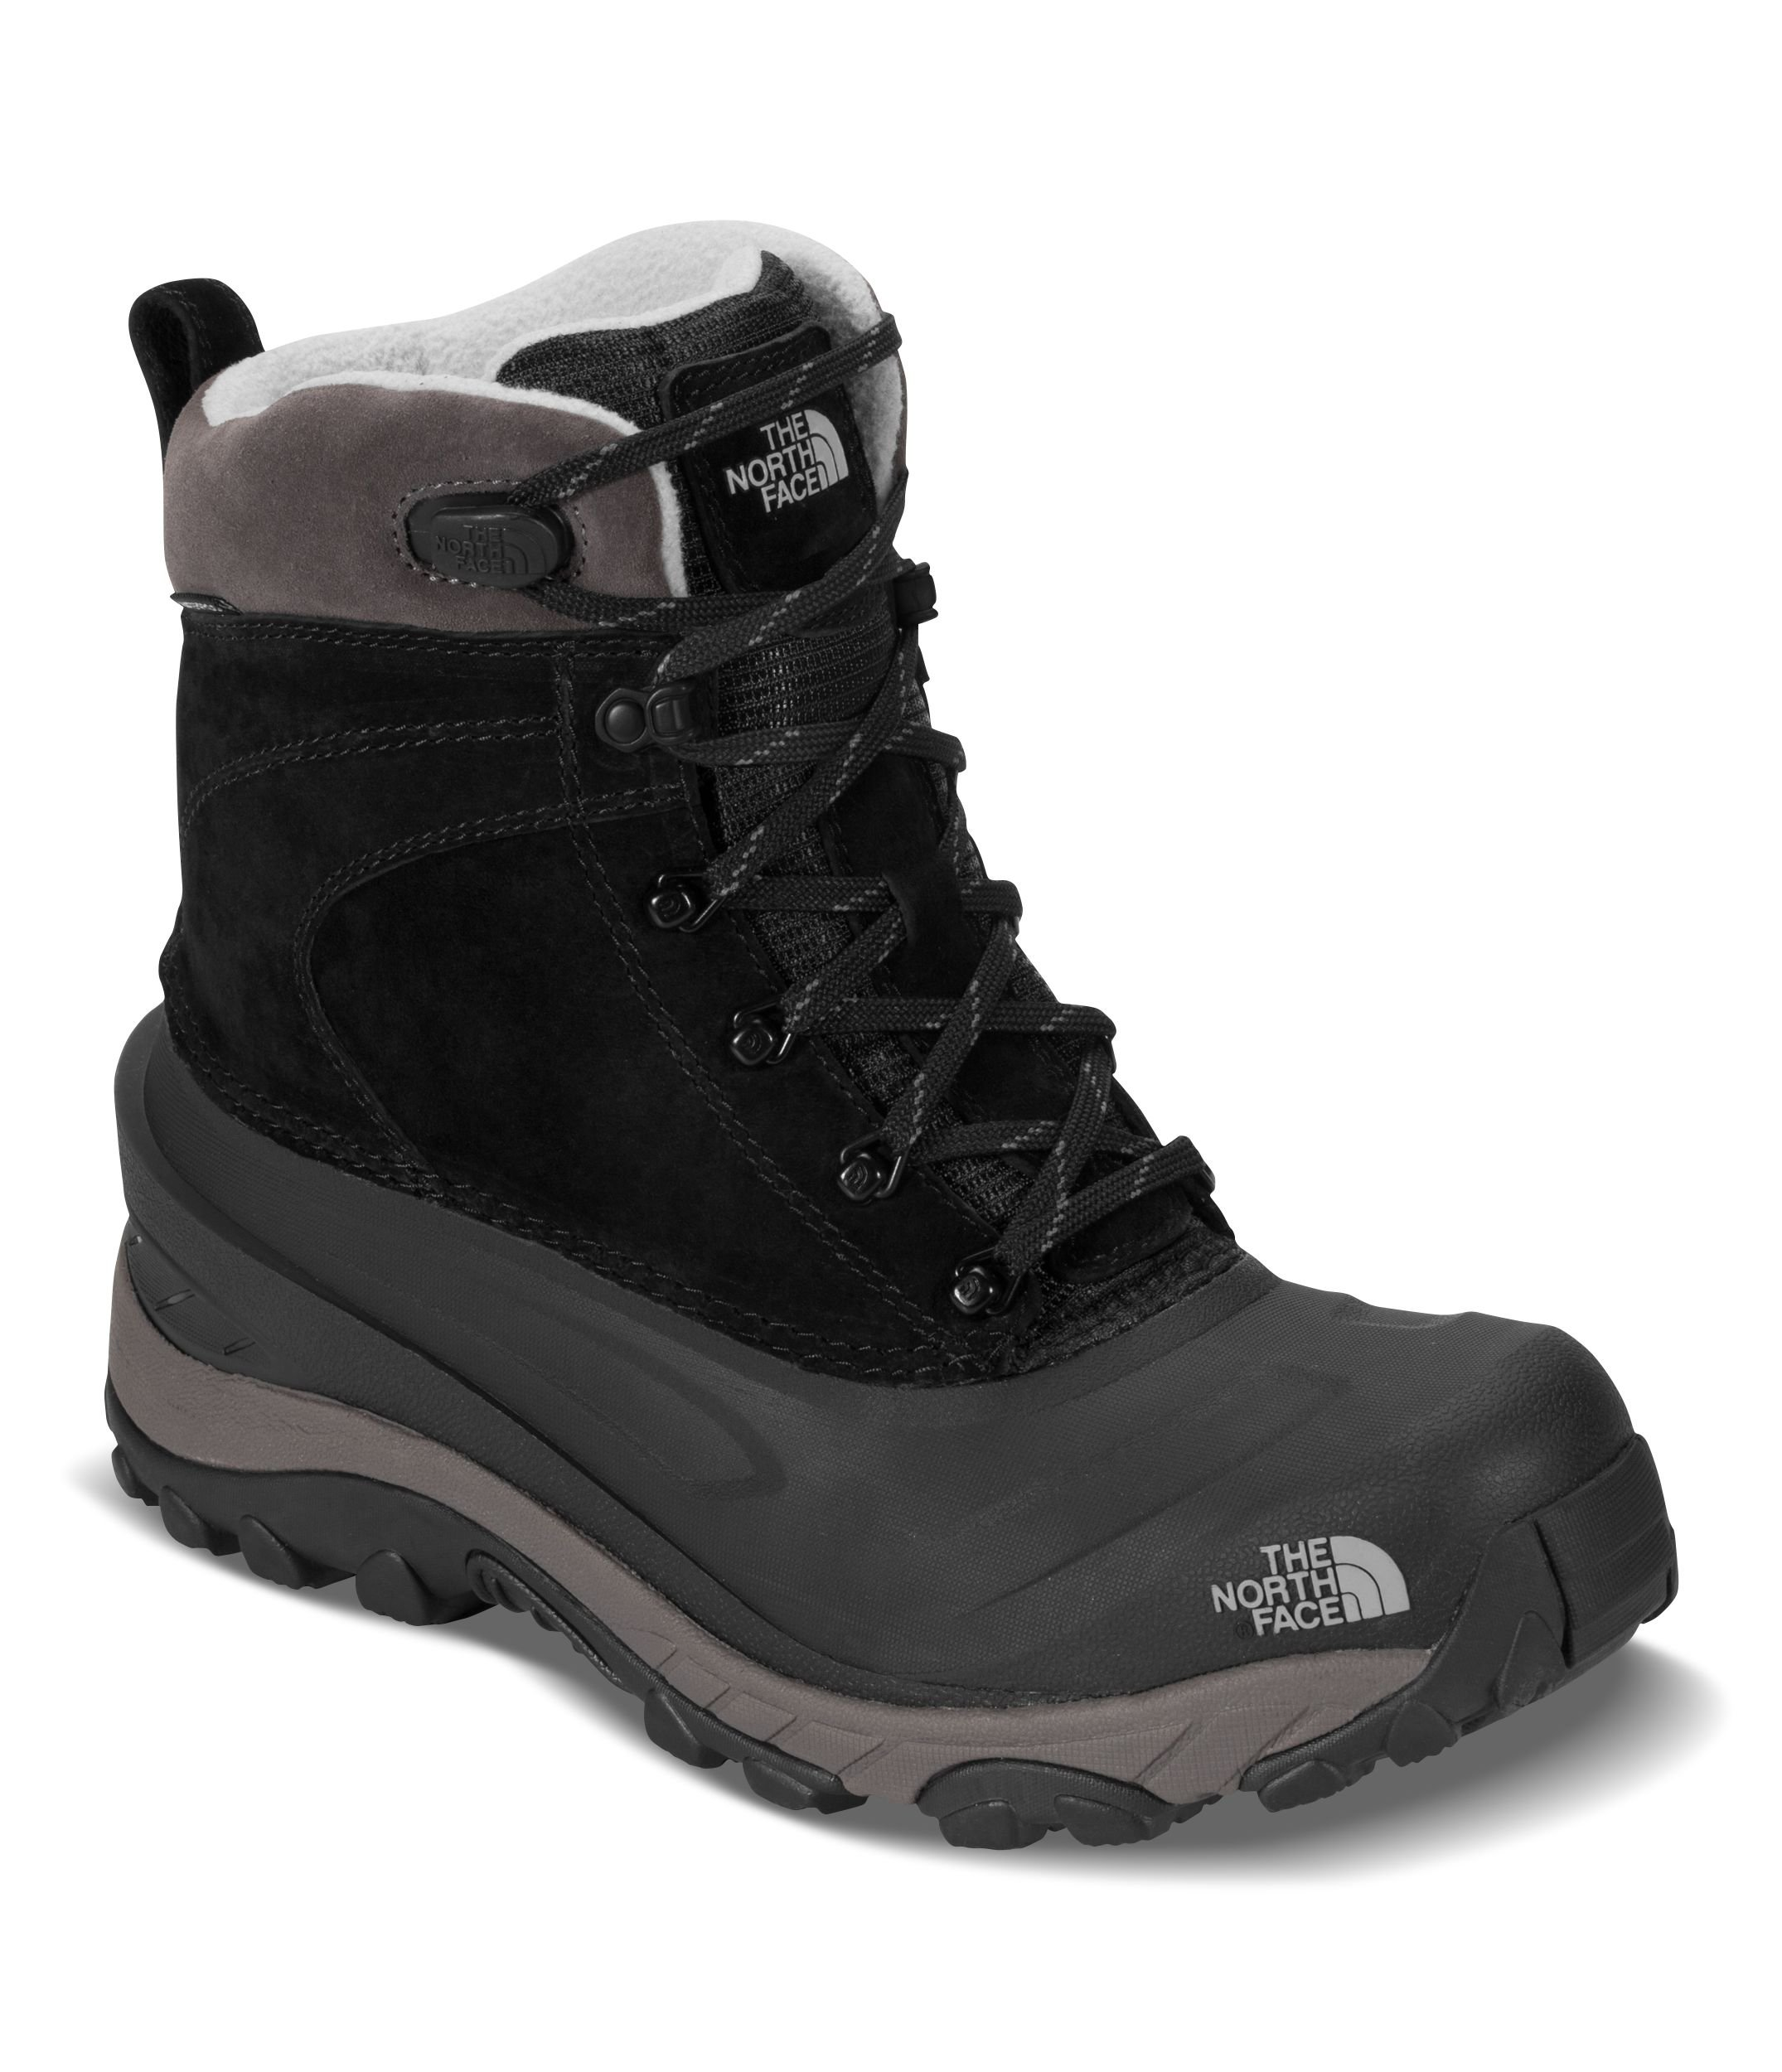 The North Face Men's Chilkat III - TNF Black & Dark Gull Grey - 11.5 by The North Face